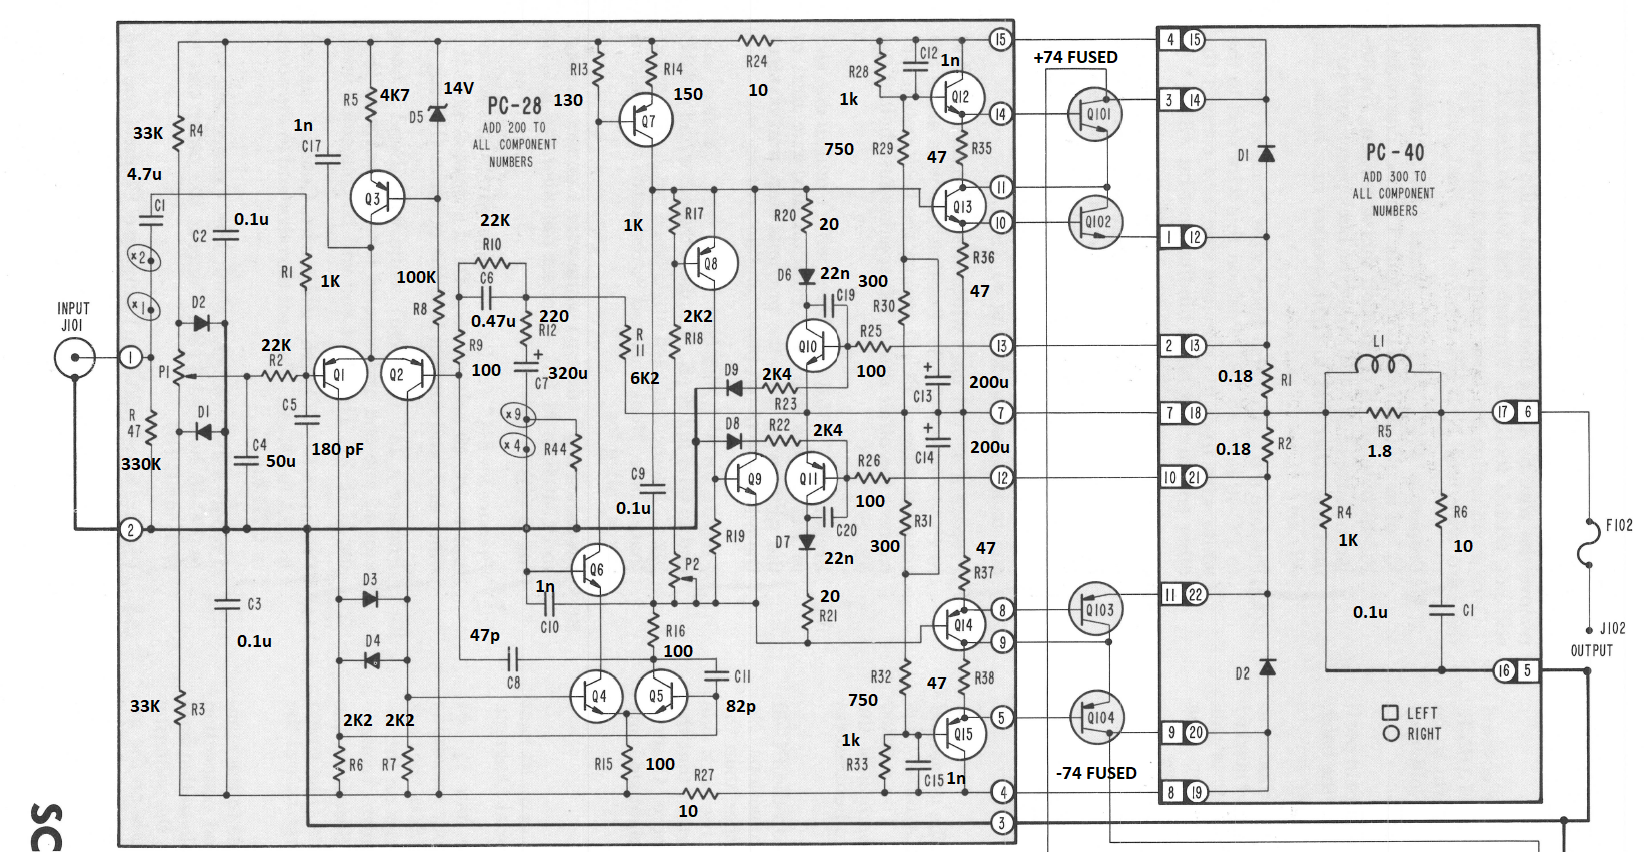 Stereo 400 416 And 410 Audio Amplifier Block Diagram Schematic With Annotated Values